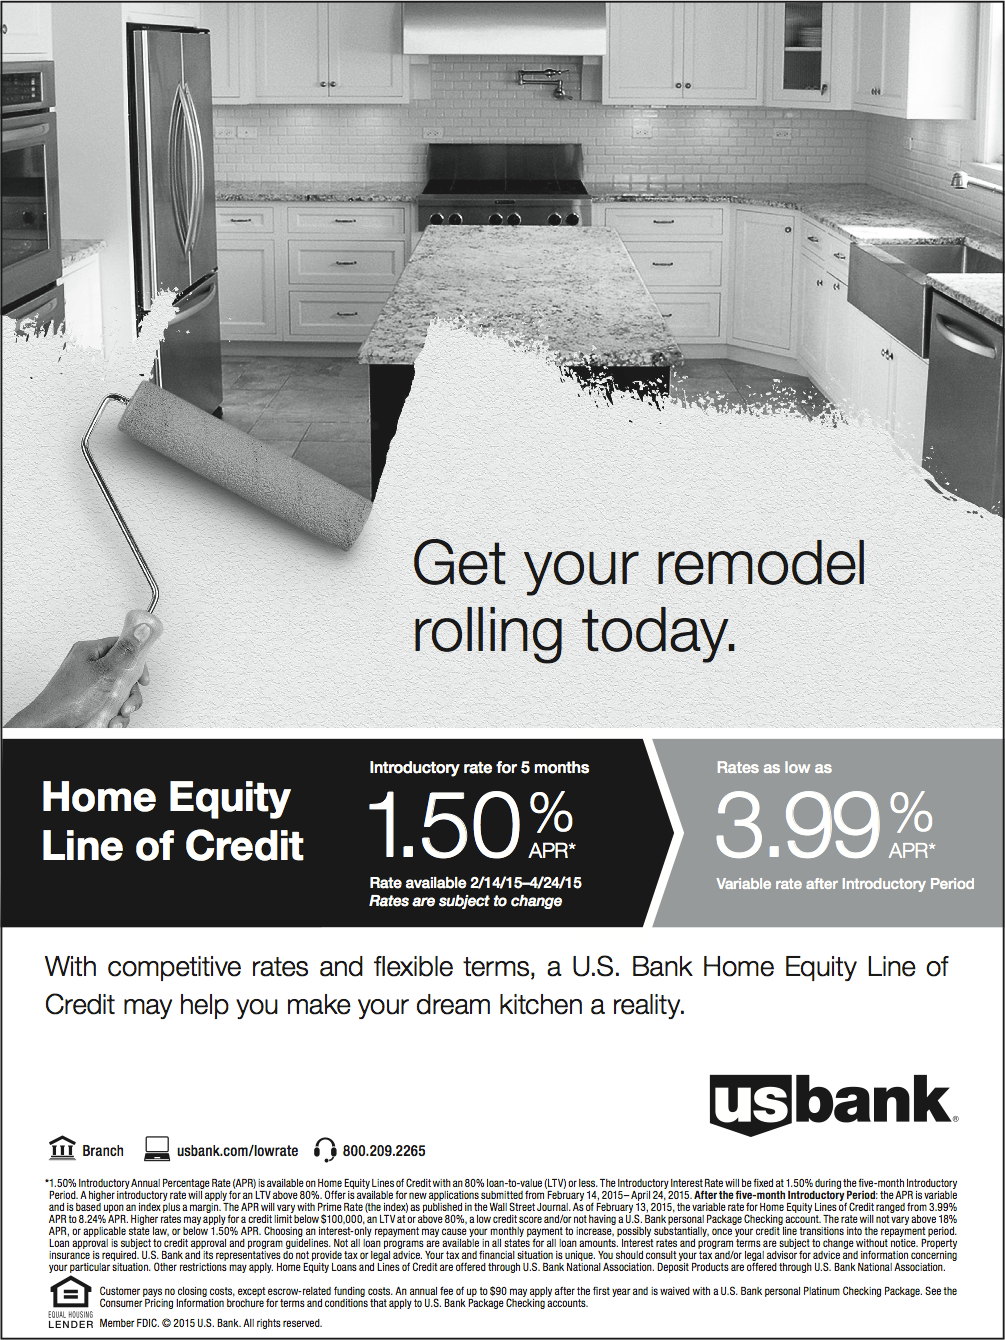 Advertisement: US Bank Home Equity Line of Credit